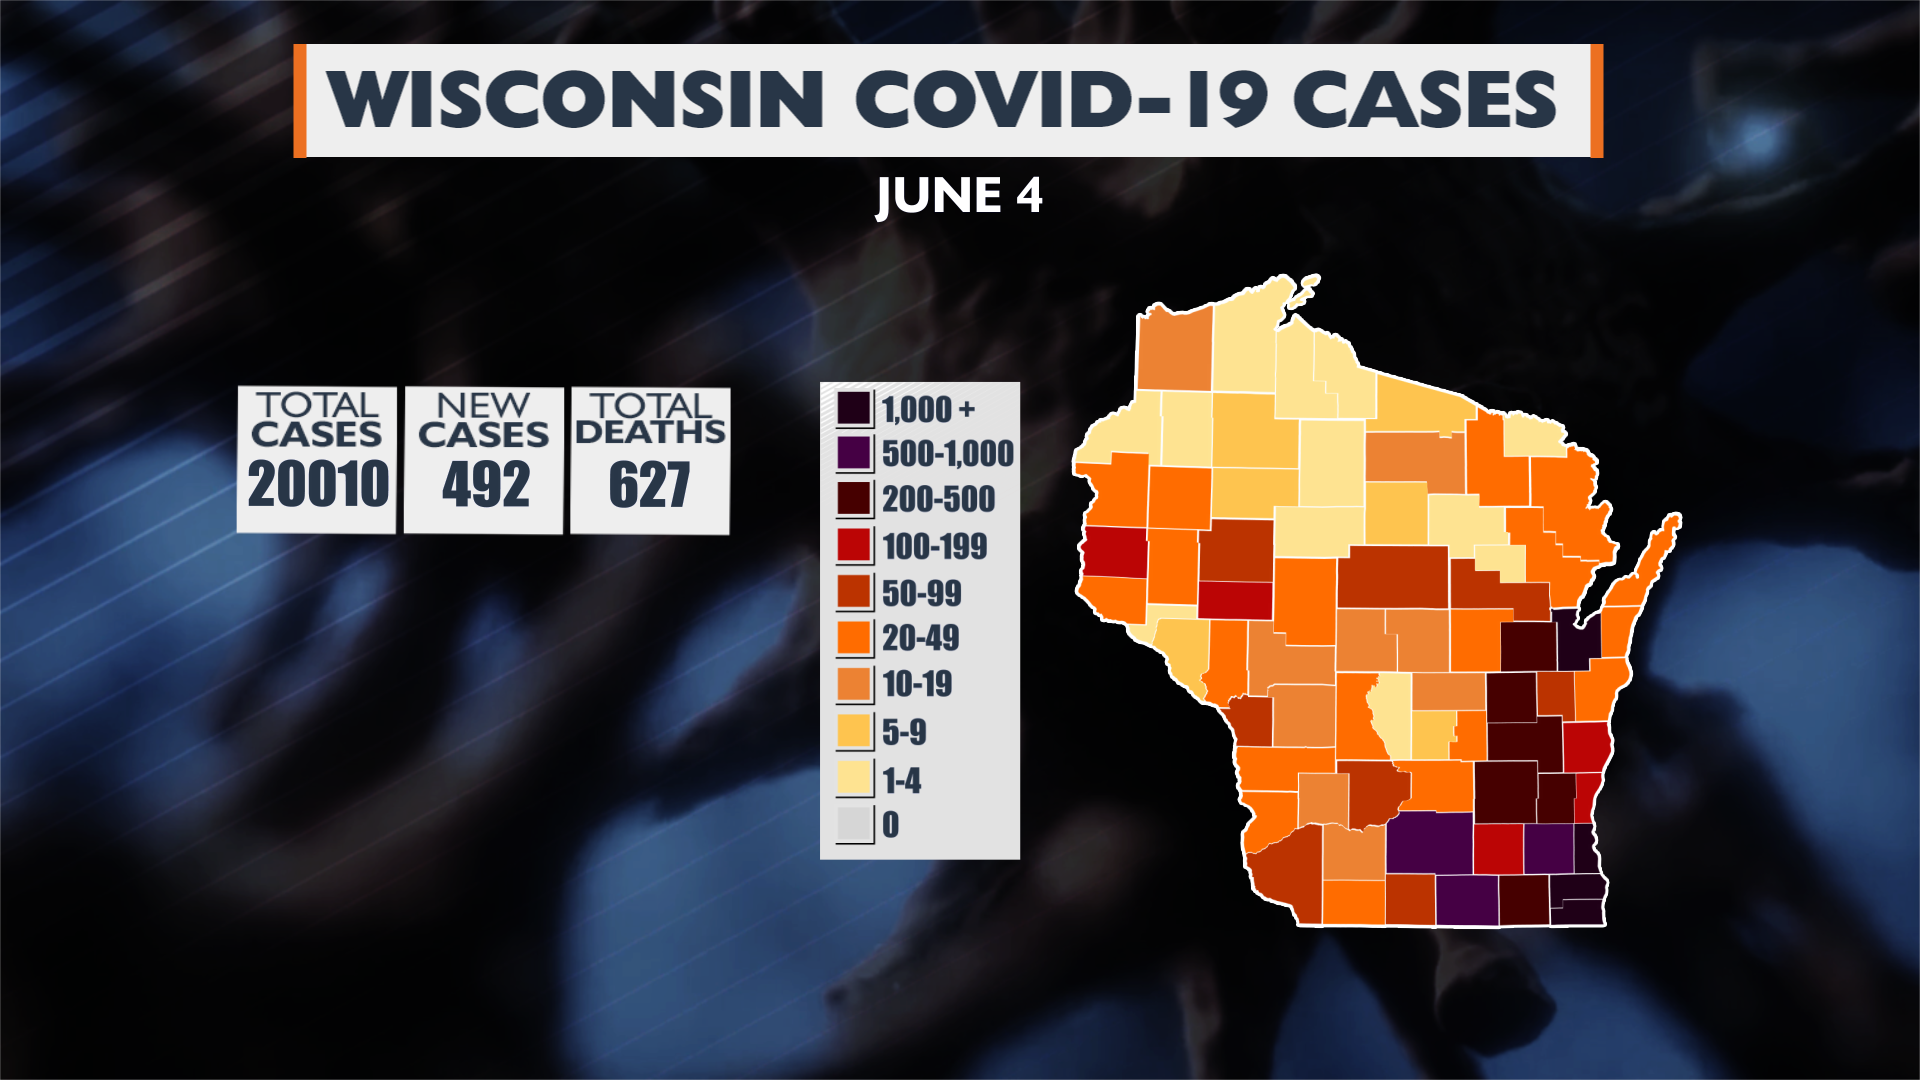 6 04 20 Update Wi Covid 19 Cases Map